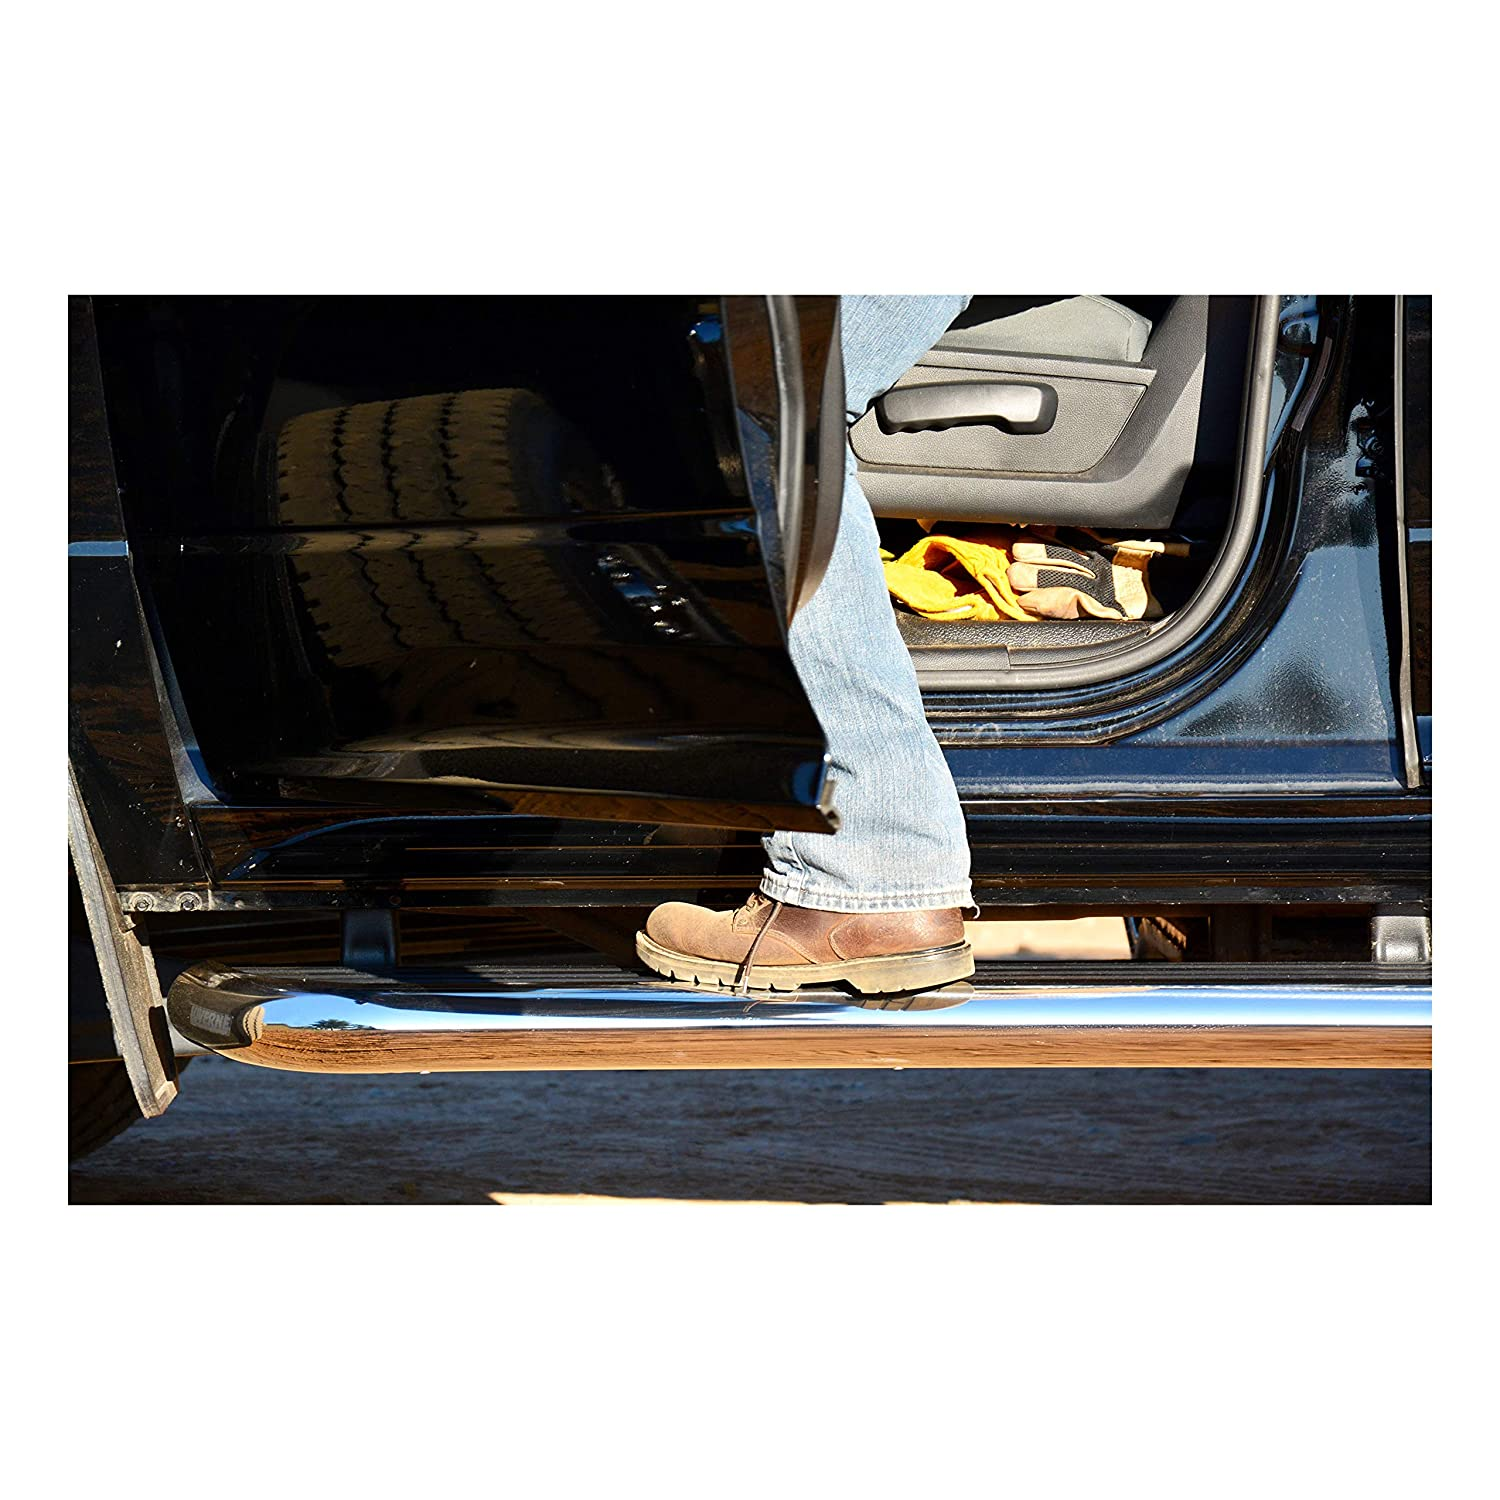 GMC Savana 4500 5500 LUVERNE 575036-570341 MegaStep 36-Inch Cargo Van Running Boards with Non-Skid Rubber Treads for Select Chevrolet Express